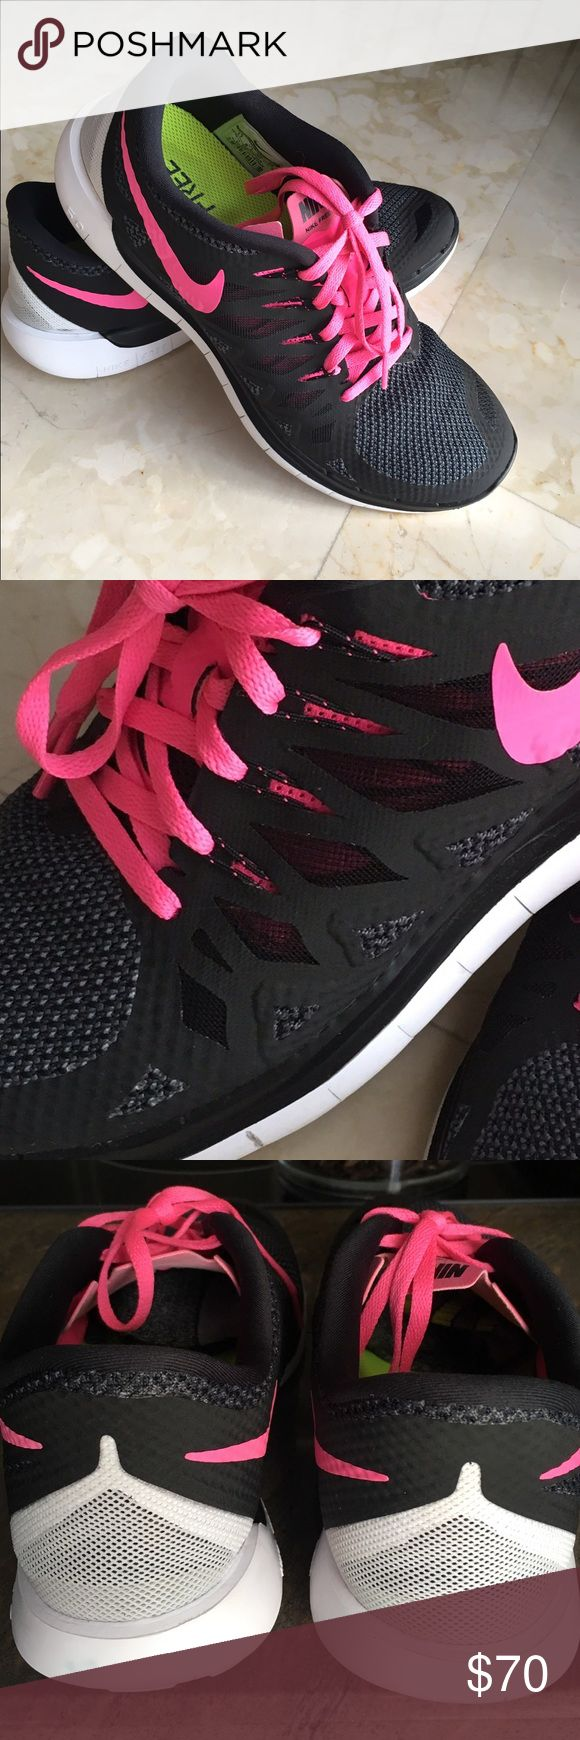 """Nike Free Flyknit 5.0. Sneakers Black and fucshia pink. Worn 3x. Did not sweat in them and no foot odor.  No toe scuffs or heel wear. Nike sneakers tend to run small so these size 11's will comfortably fit a size 10-10.5"""" foot. If you normally wear a size 11, these will fit your feet exact, leaving no room for wearing socks with them. Nike Shoes Athletic Shoes"""